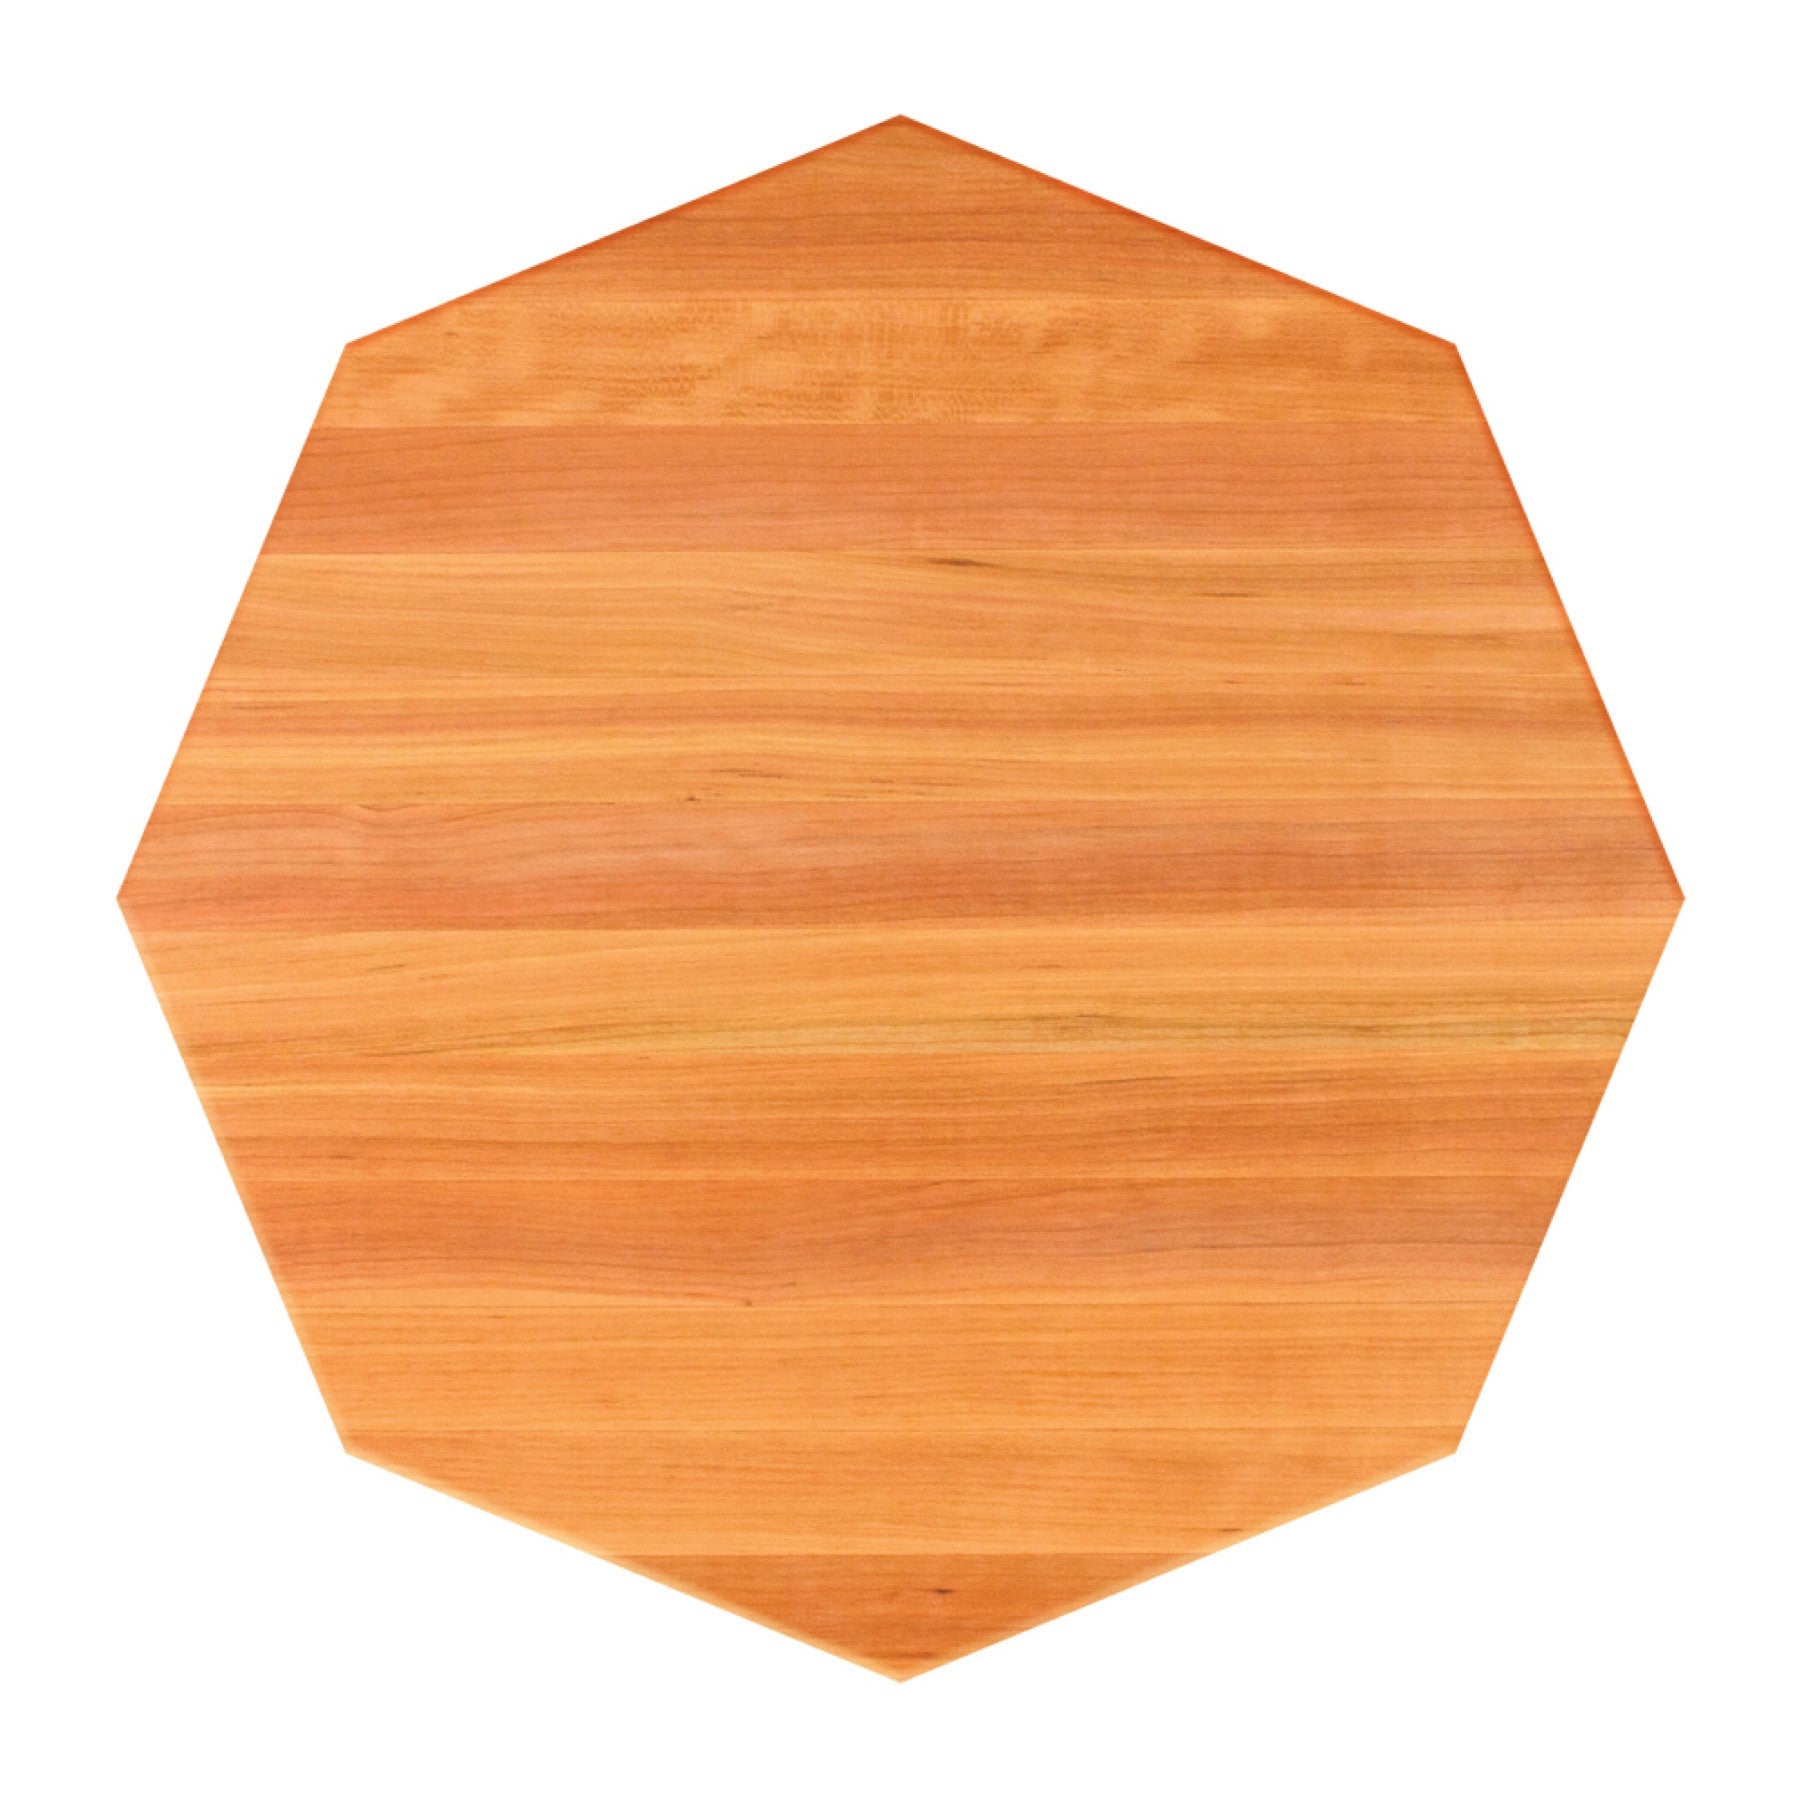 John Boos Octagonal RTC Cherry Butcher Block Table Top